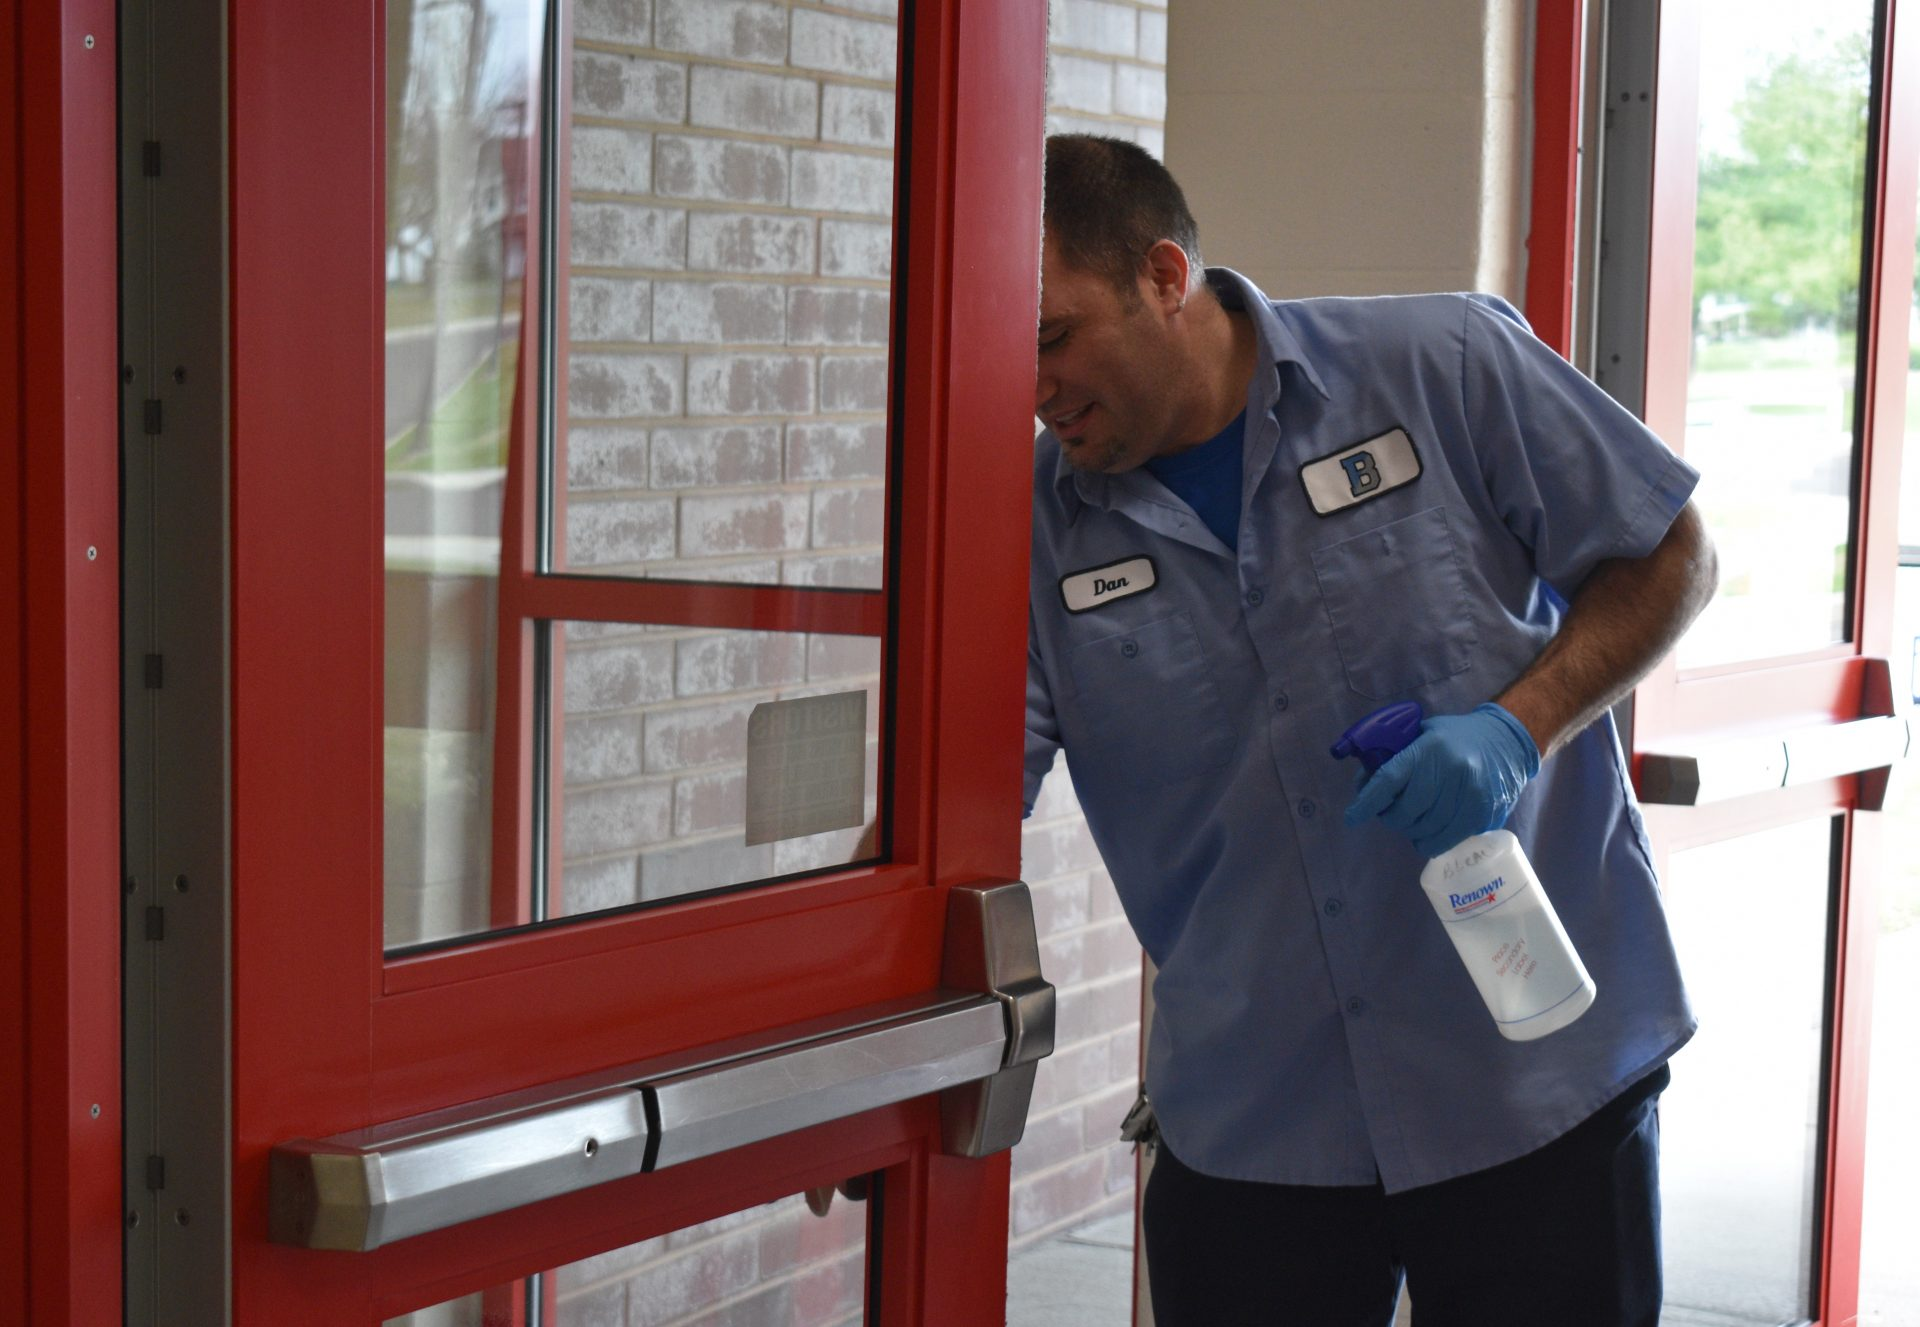 Dan Mortimer, a custodian at Cornwell Elementary School in Bensalem Township, cleans doors leading into the polling place for two precincts during Tuesday's special House district 18 election.